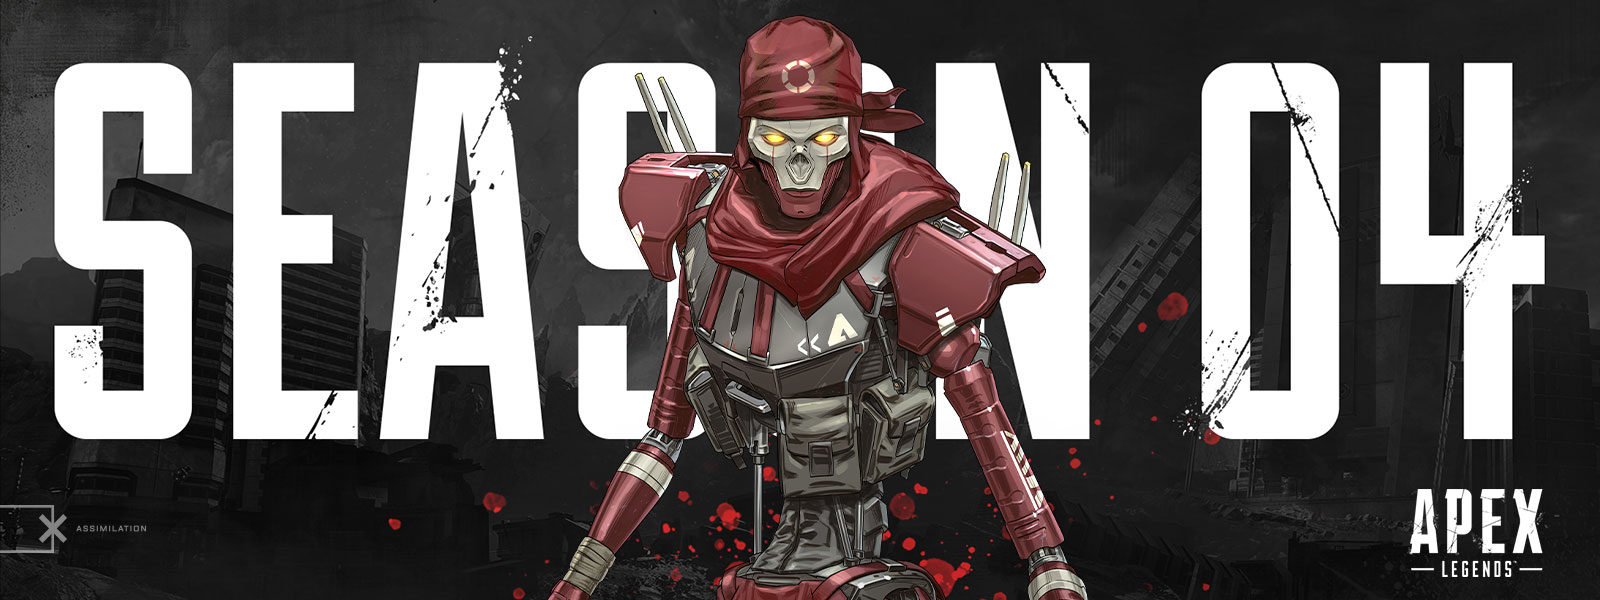 Apex Legends, Season 4, the robot Revenant stares with glowing eyes